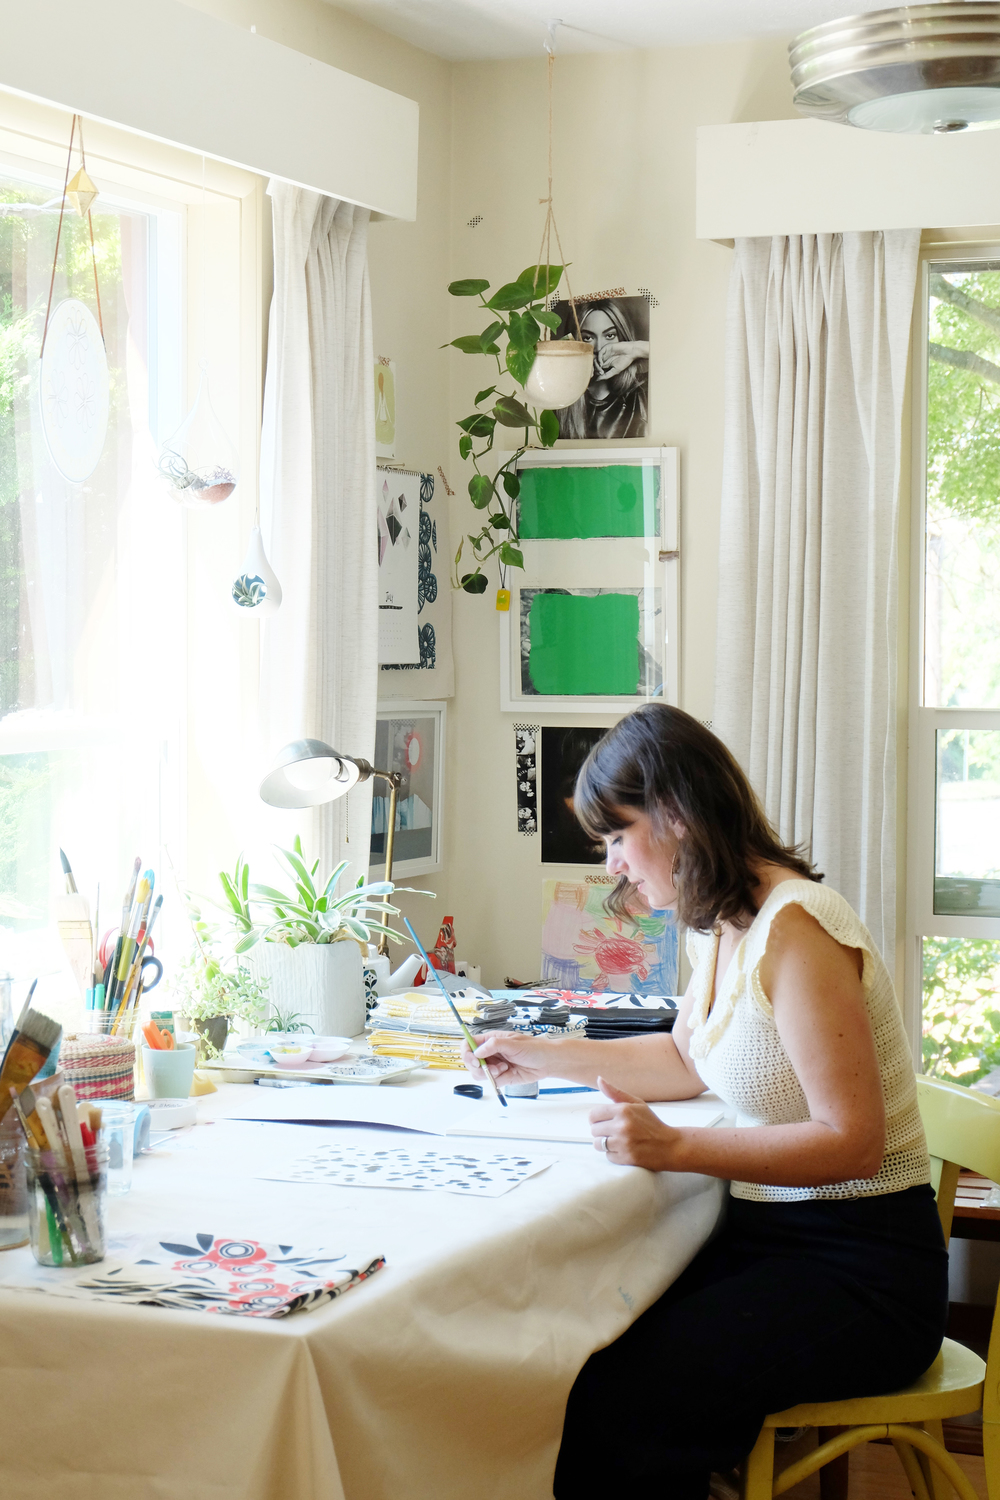 Anna Joyce's Maker Spaces | Emily Quinton